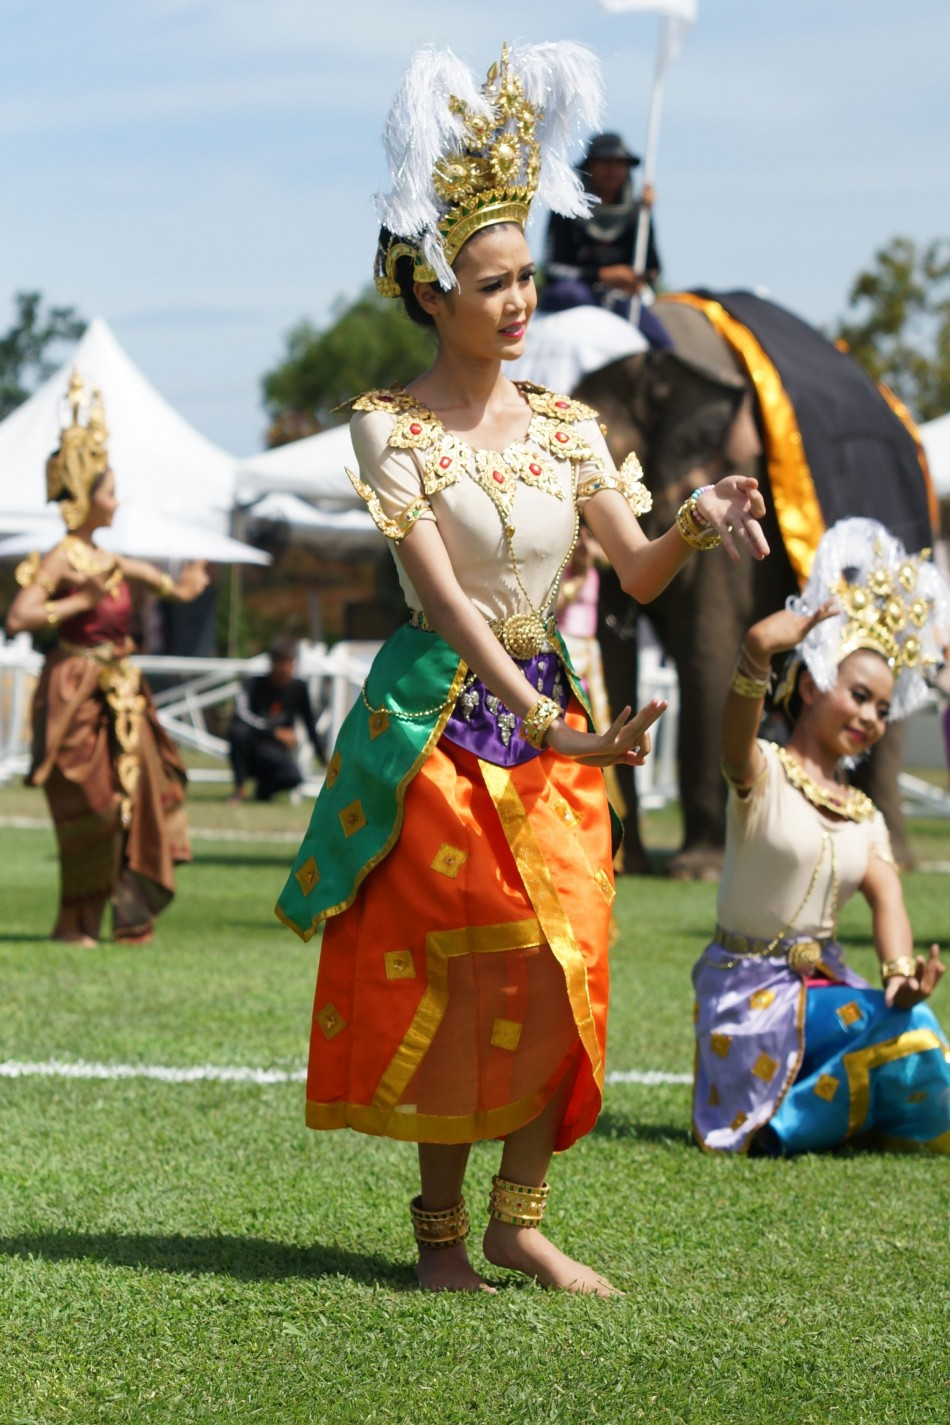 The opening ceremony for King's Cup Elephant Polo 2013 Tournament in Hua Hin, Thailand, was a colourful event. (Photo: www.anantaraelephantpolo.com)